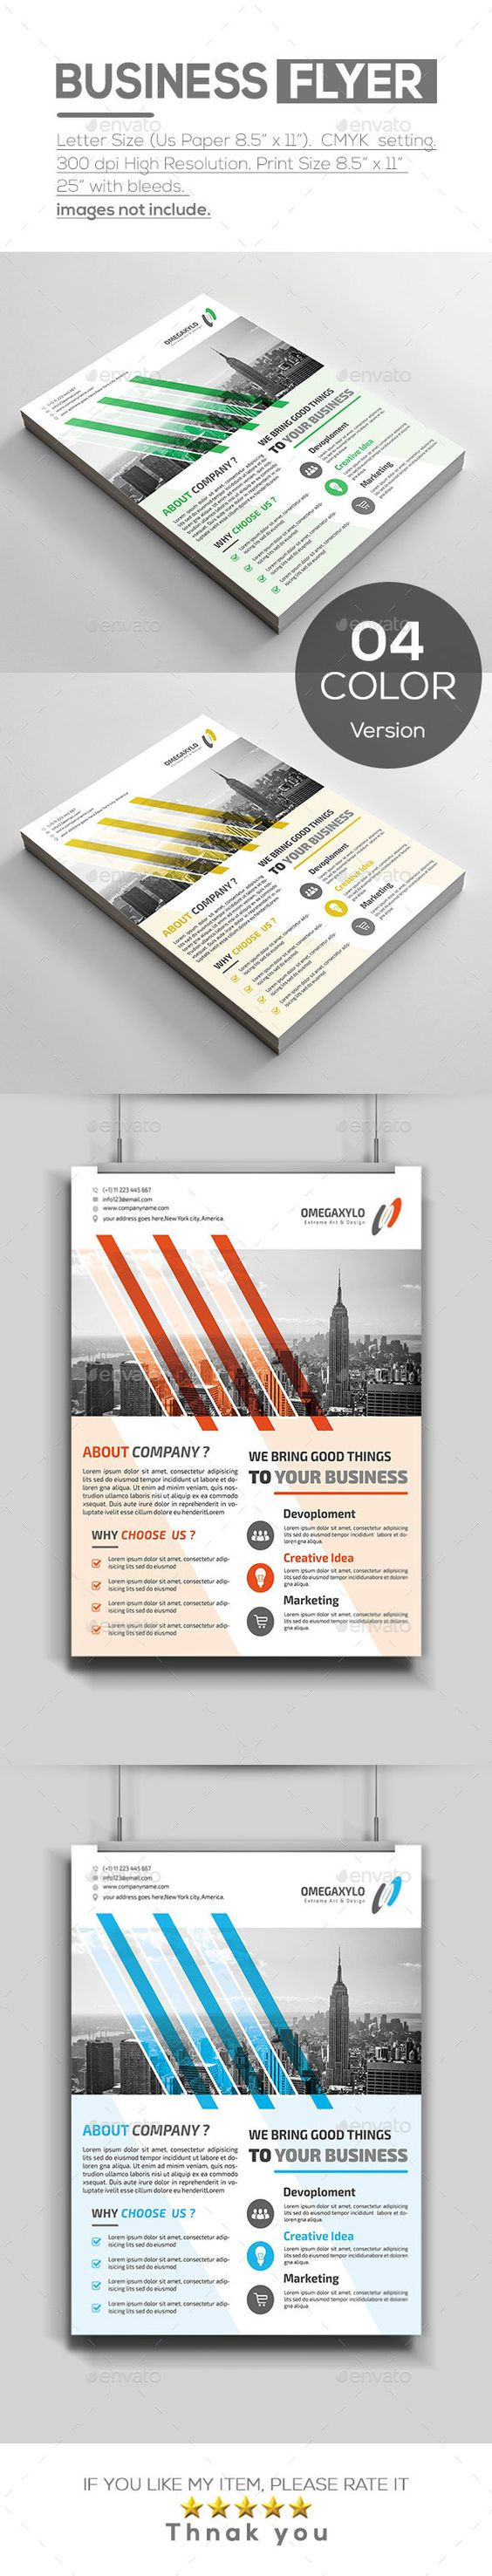 business busien flyer design template corporate flyers design business busien flyer design template corporate flyers design template psd here